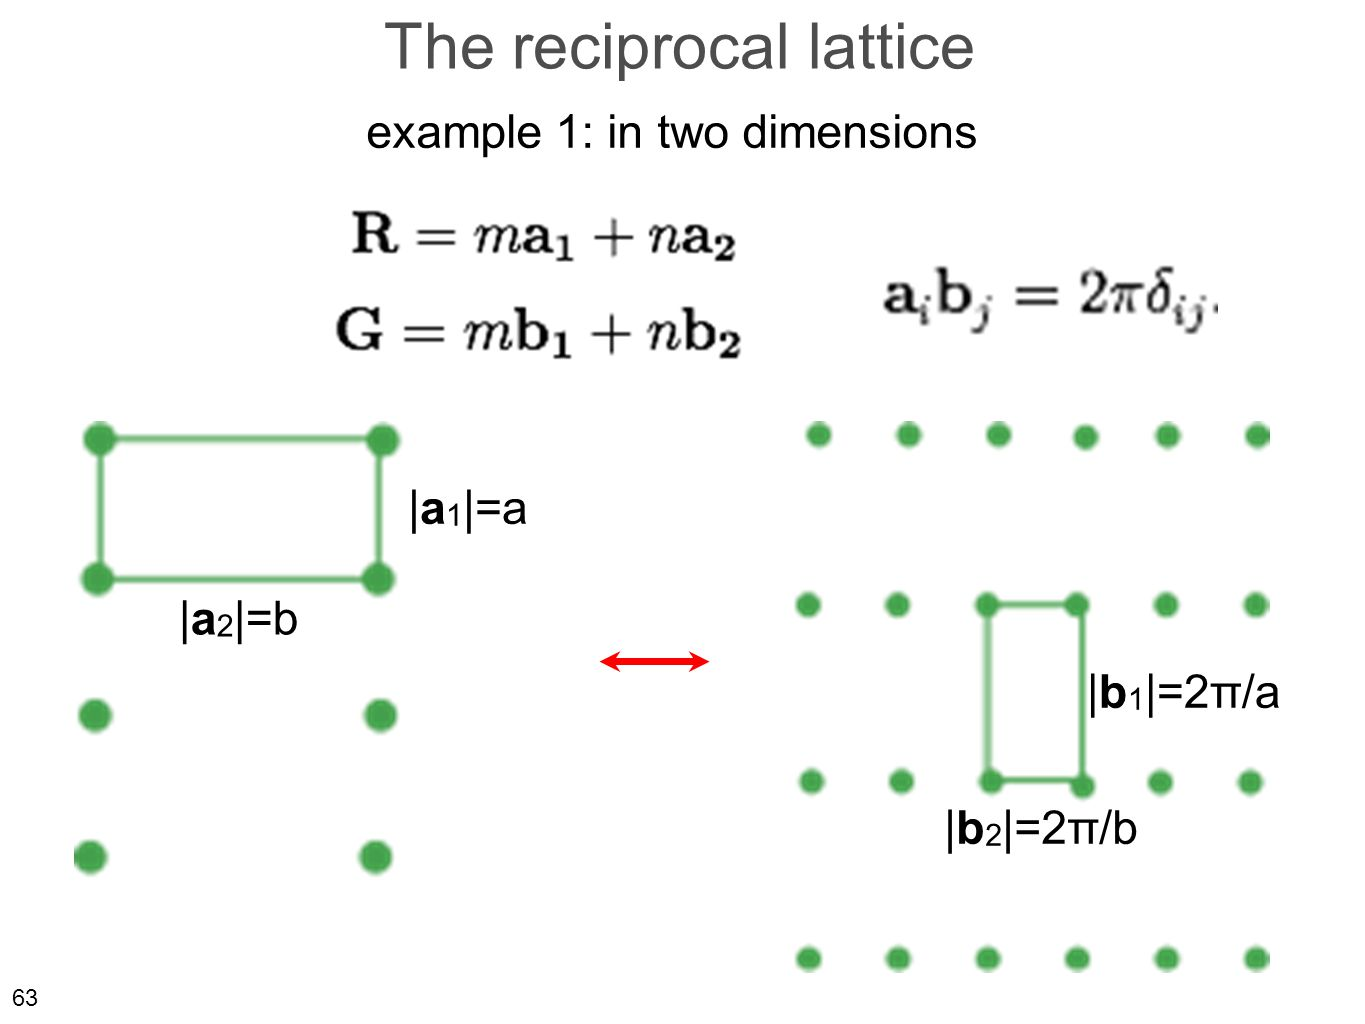 63 The reciprocal lattice example 1: in two dimensions |a 1 |=a |a 2 |=b |b 2 |=2π/b |b 1 |=2π/a